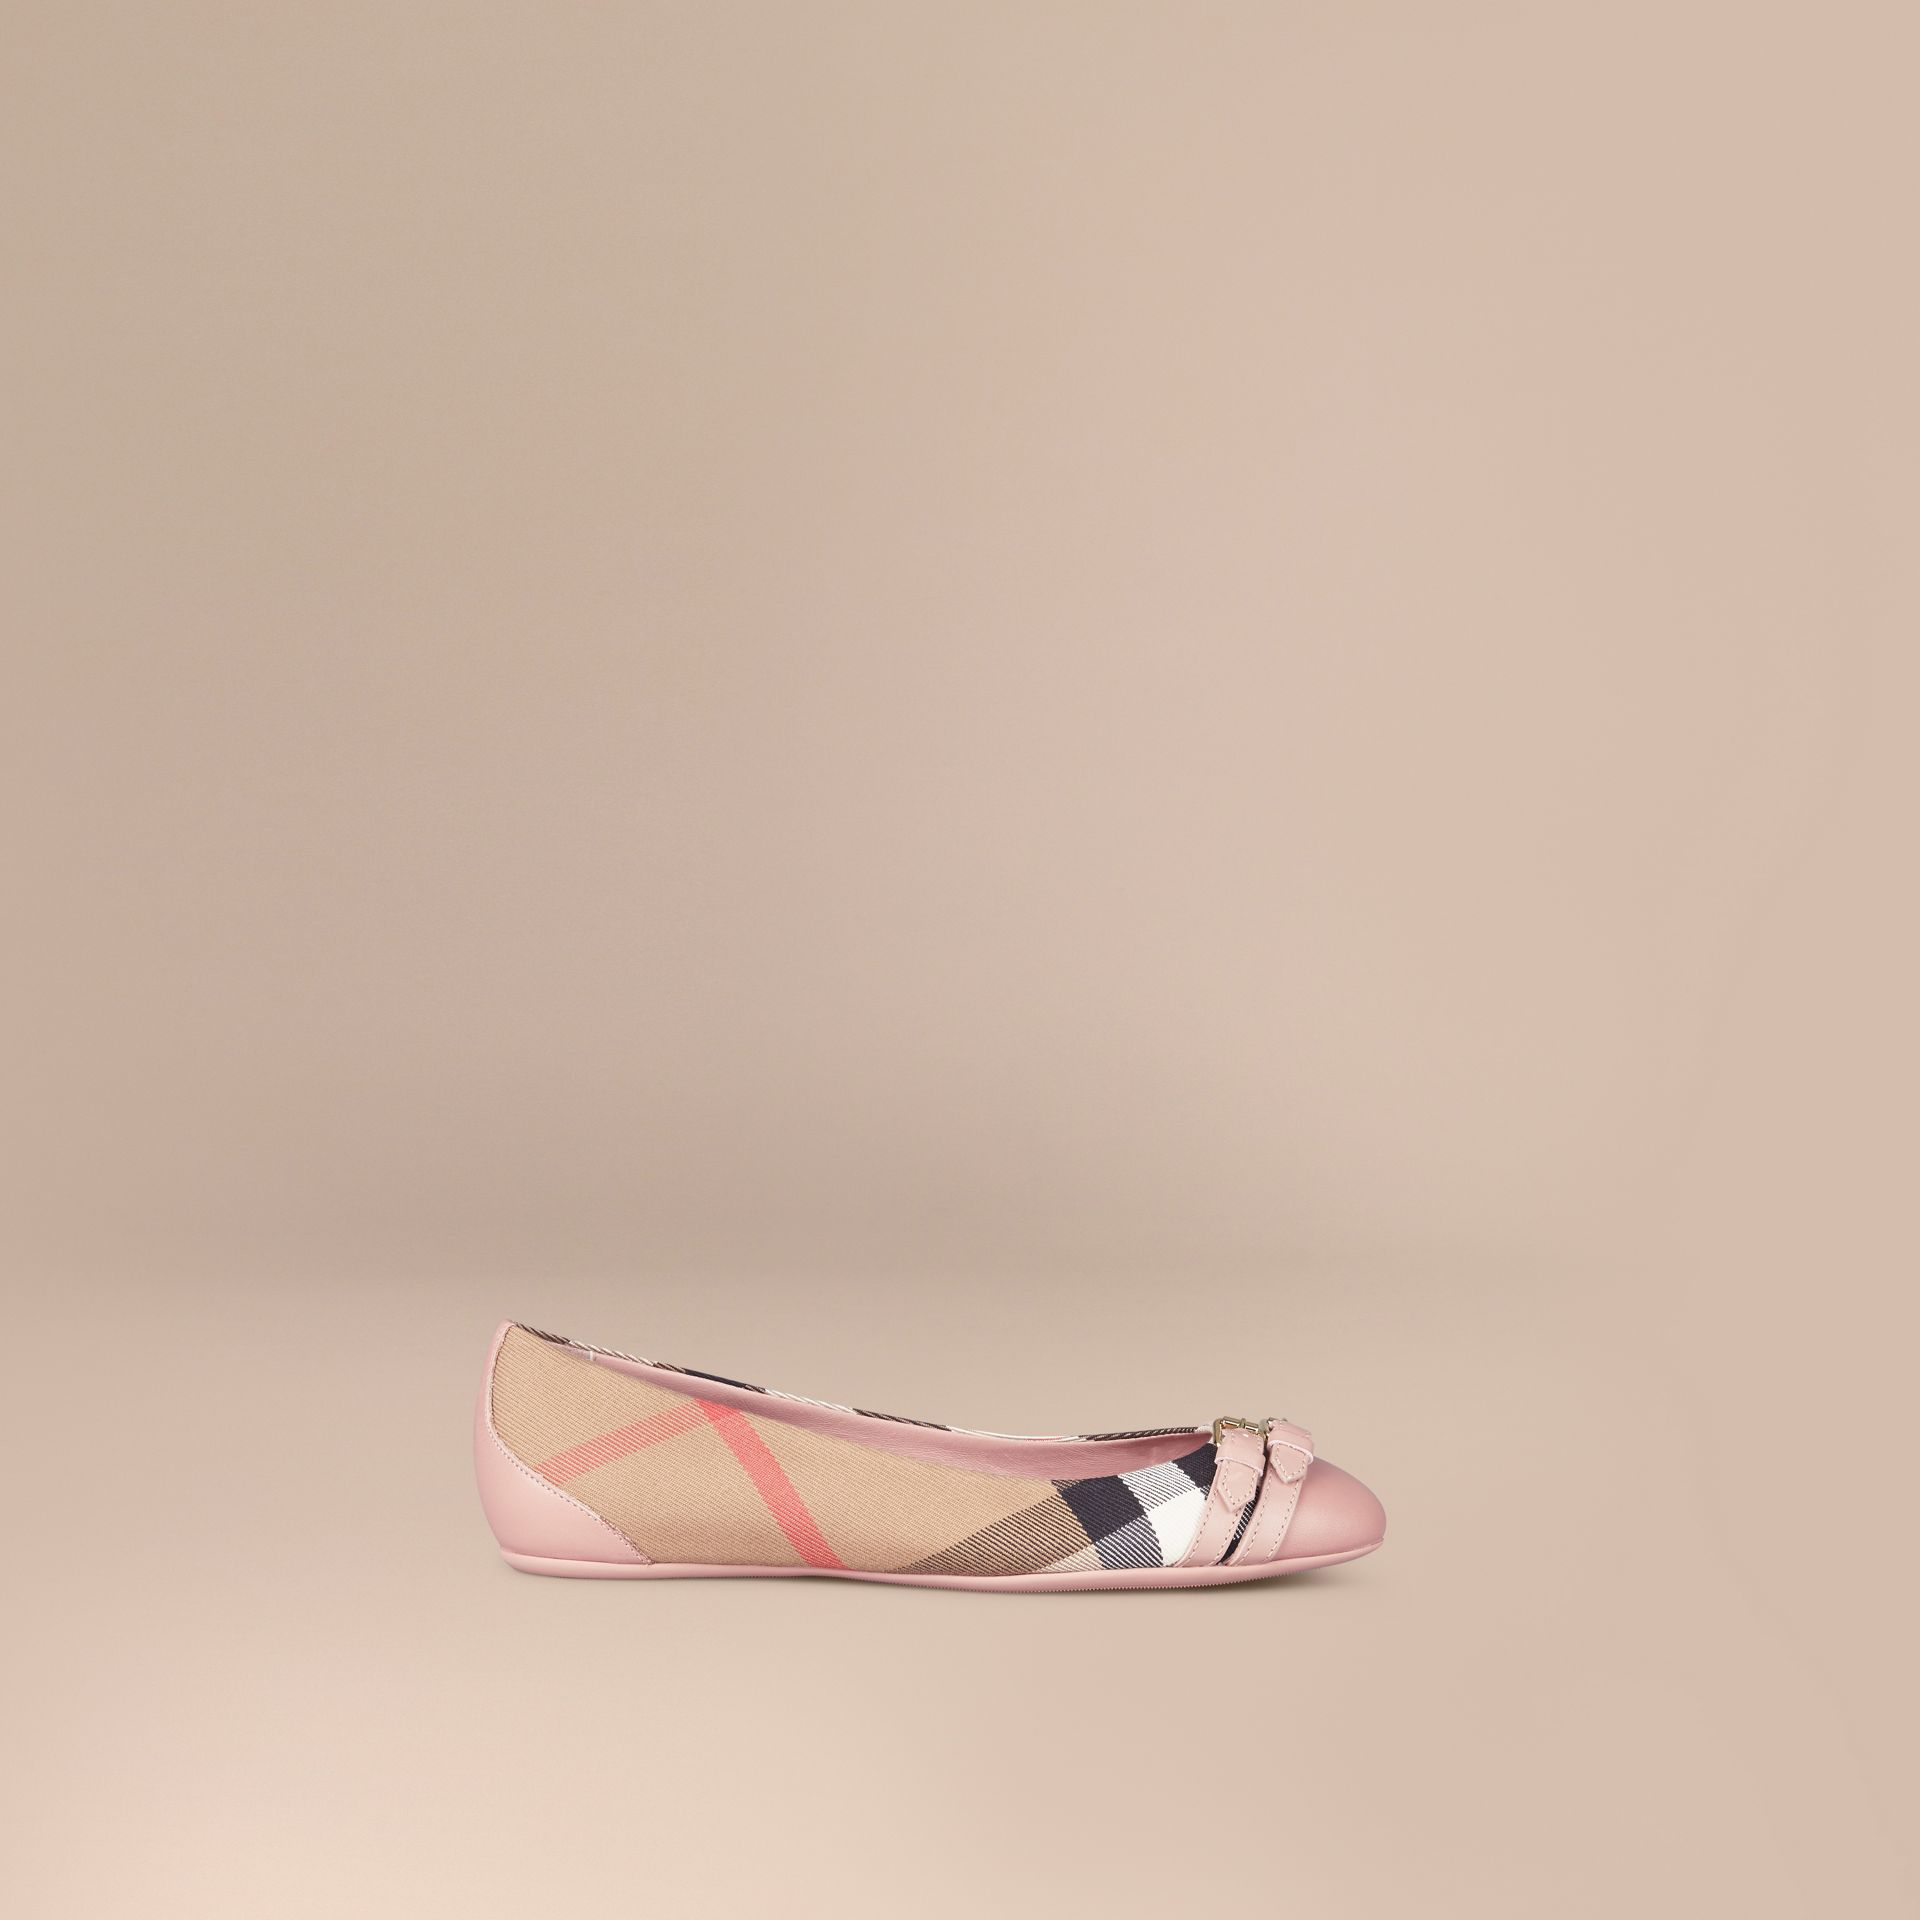 Belt Detail House Check Ballerinas in Nude Blush - Women | Burberry Hong Kong - gallery image 1